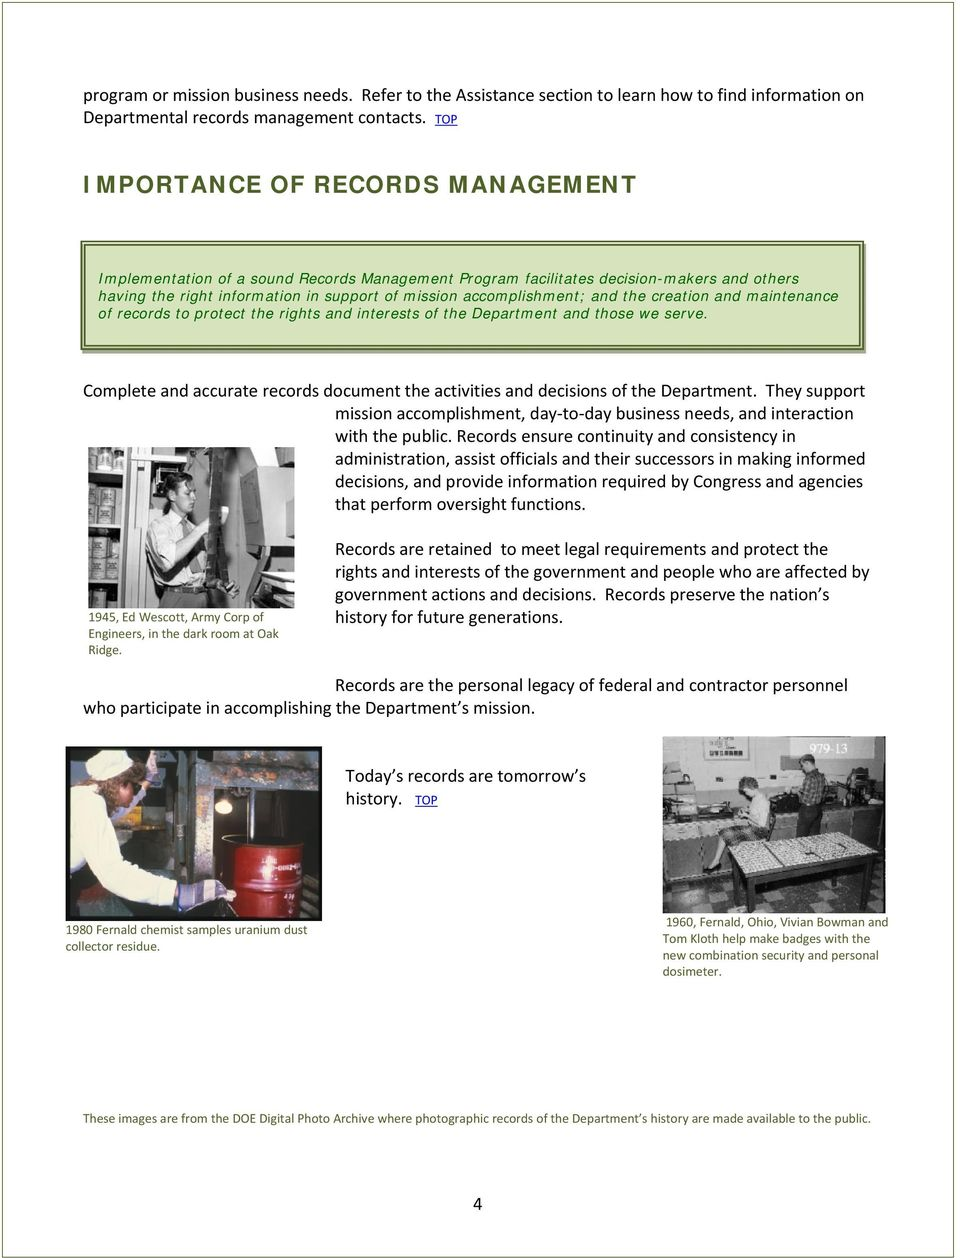 the creation and maintenance of records to protect the rights and interests of the Department and those we serve. Complete and accurate records document the activities and decisions of the Department.